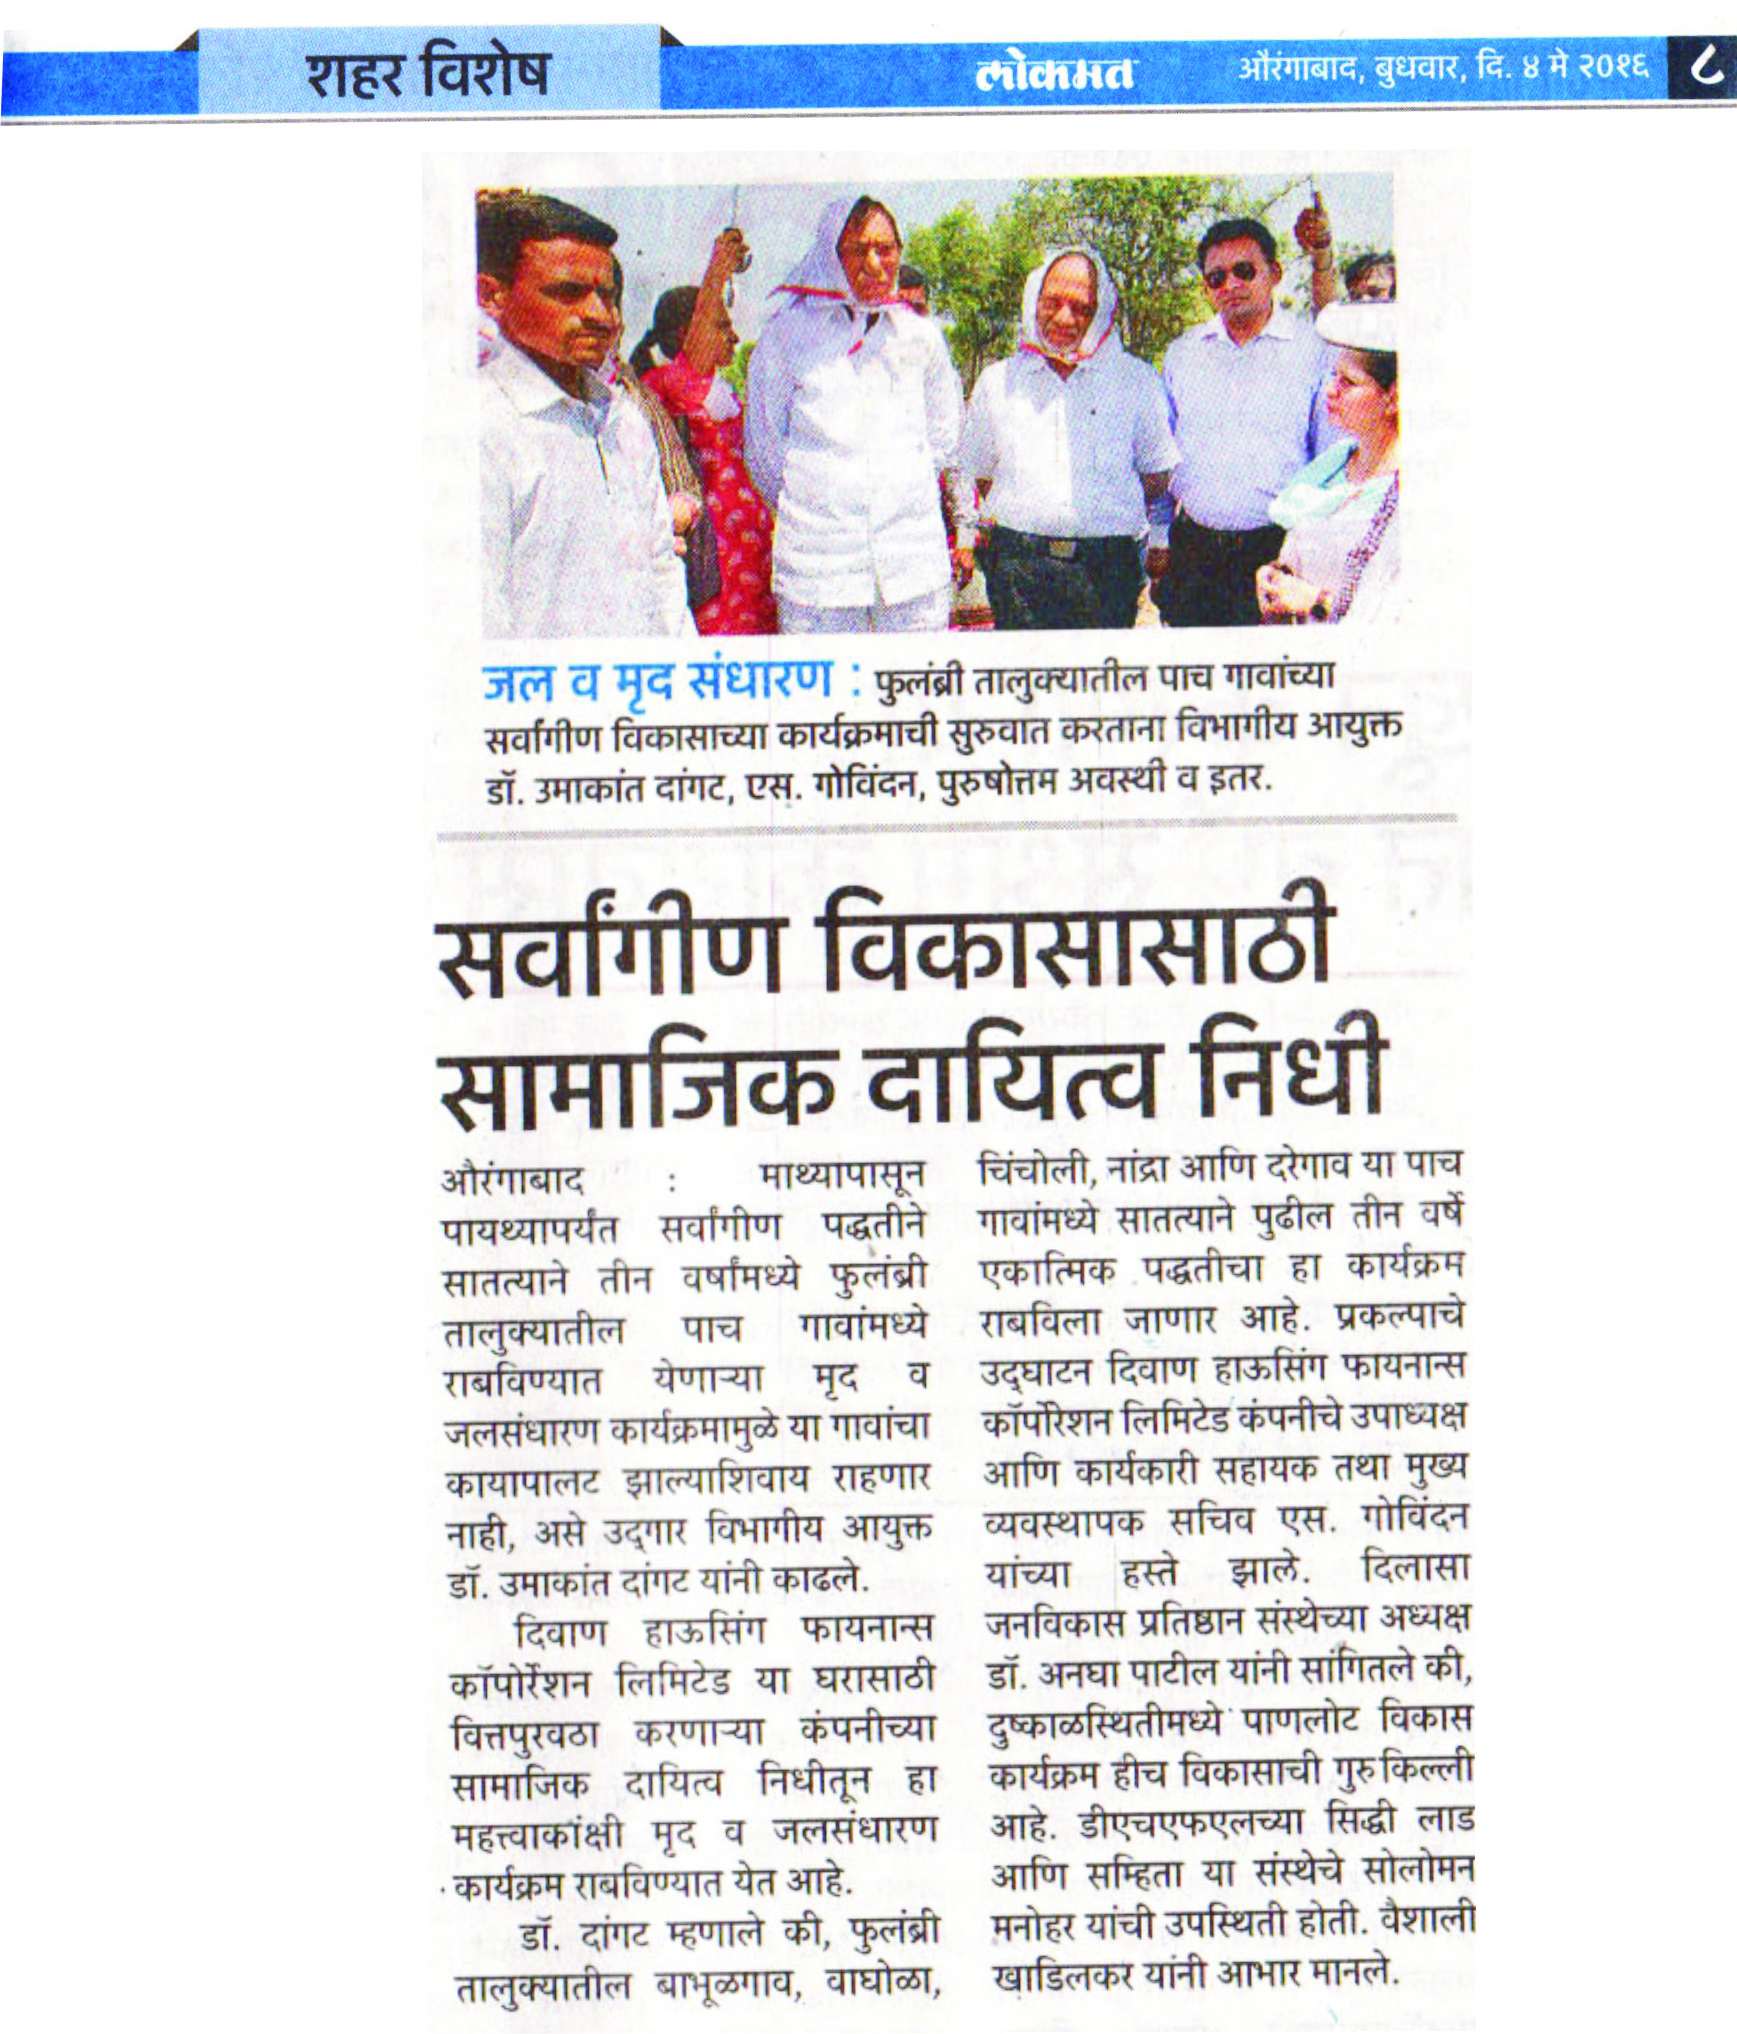 Lokmat-newspaper-cutting.jpg